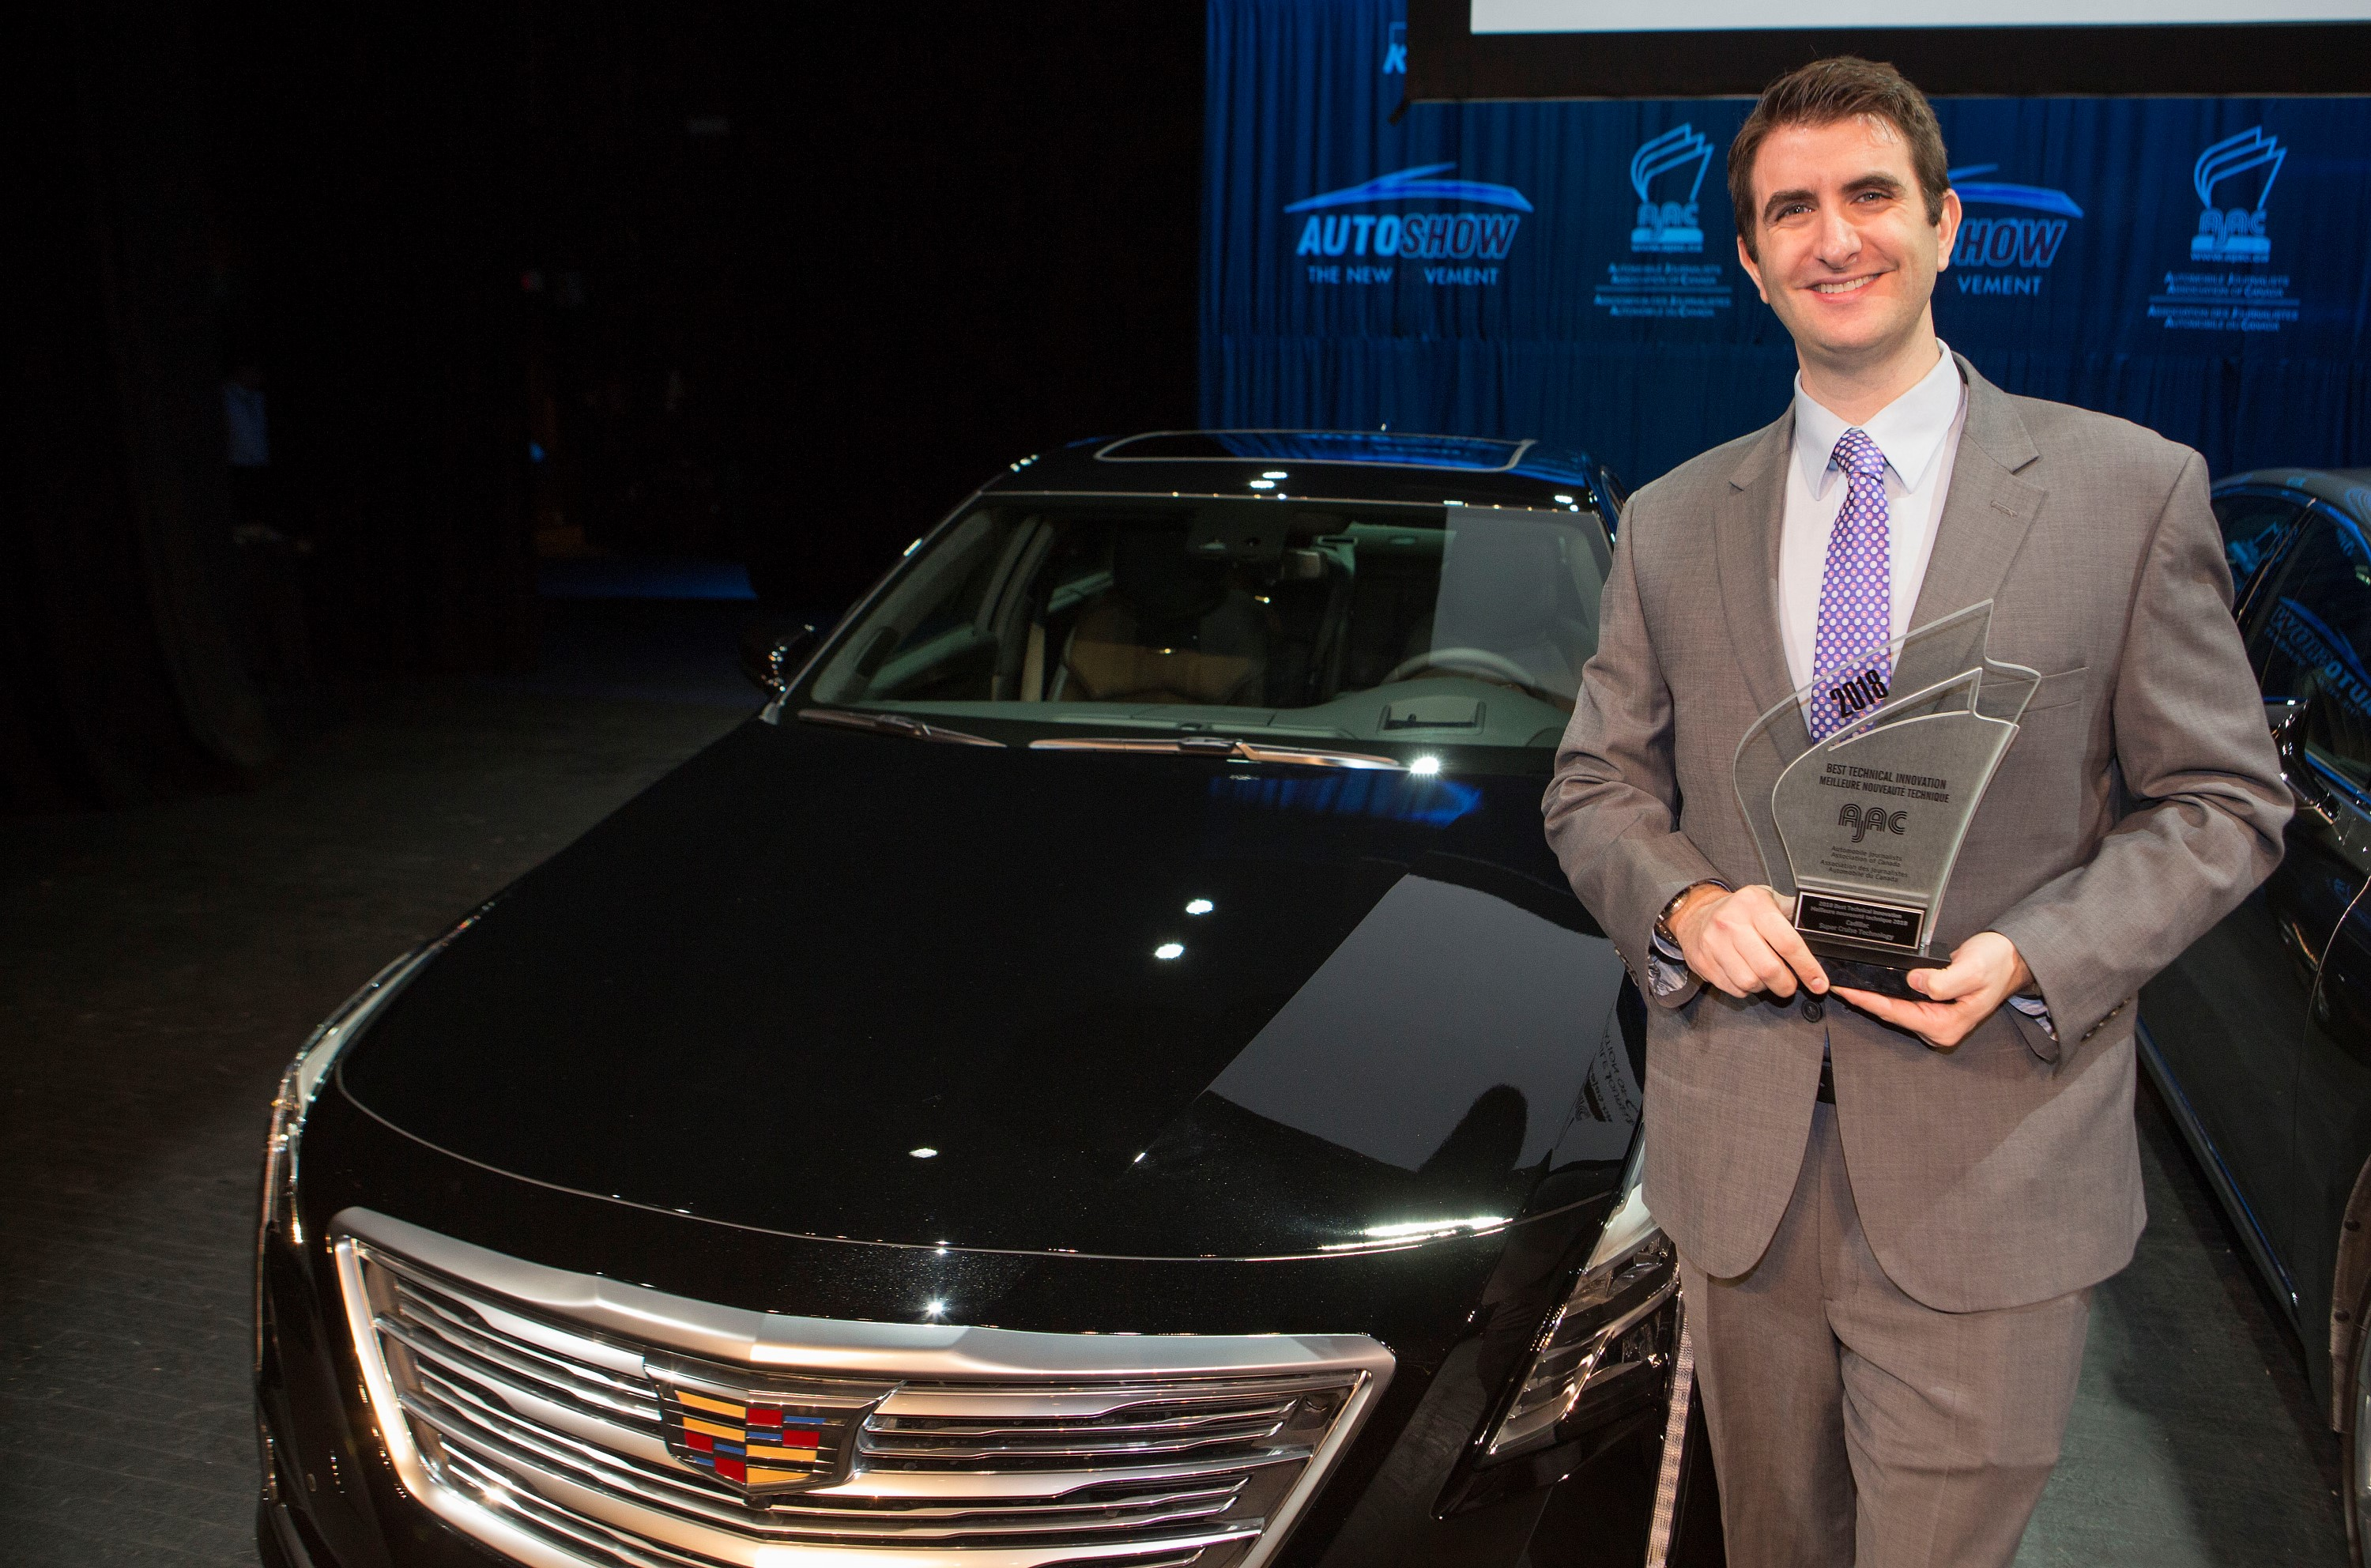 2018 AJAC Innovation Awards (Photos by Marcus Oleniuk)